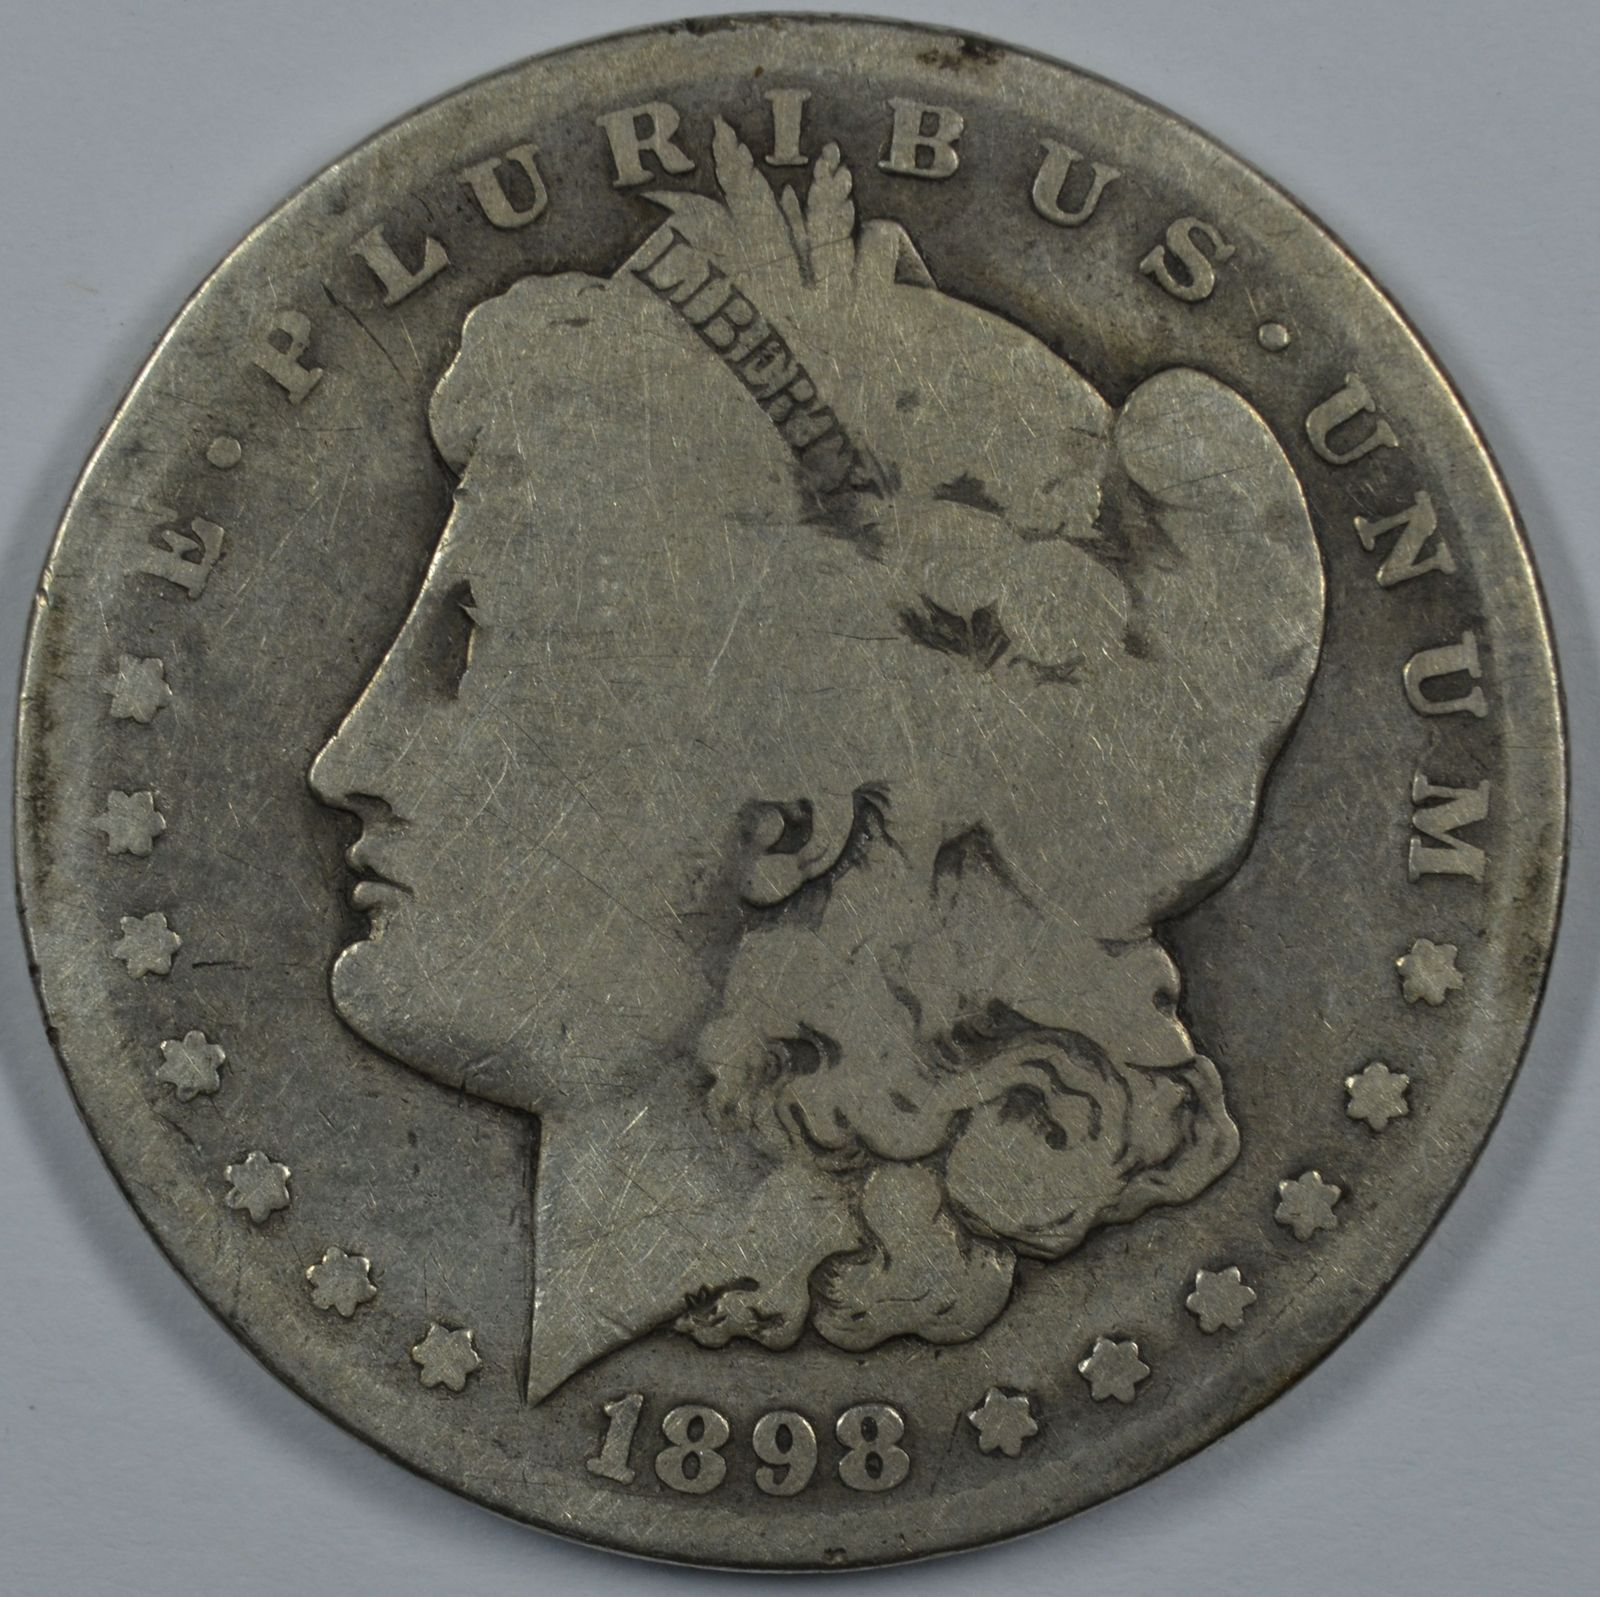 Primary image for 1898 S Morgan circulated silver dollar